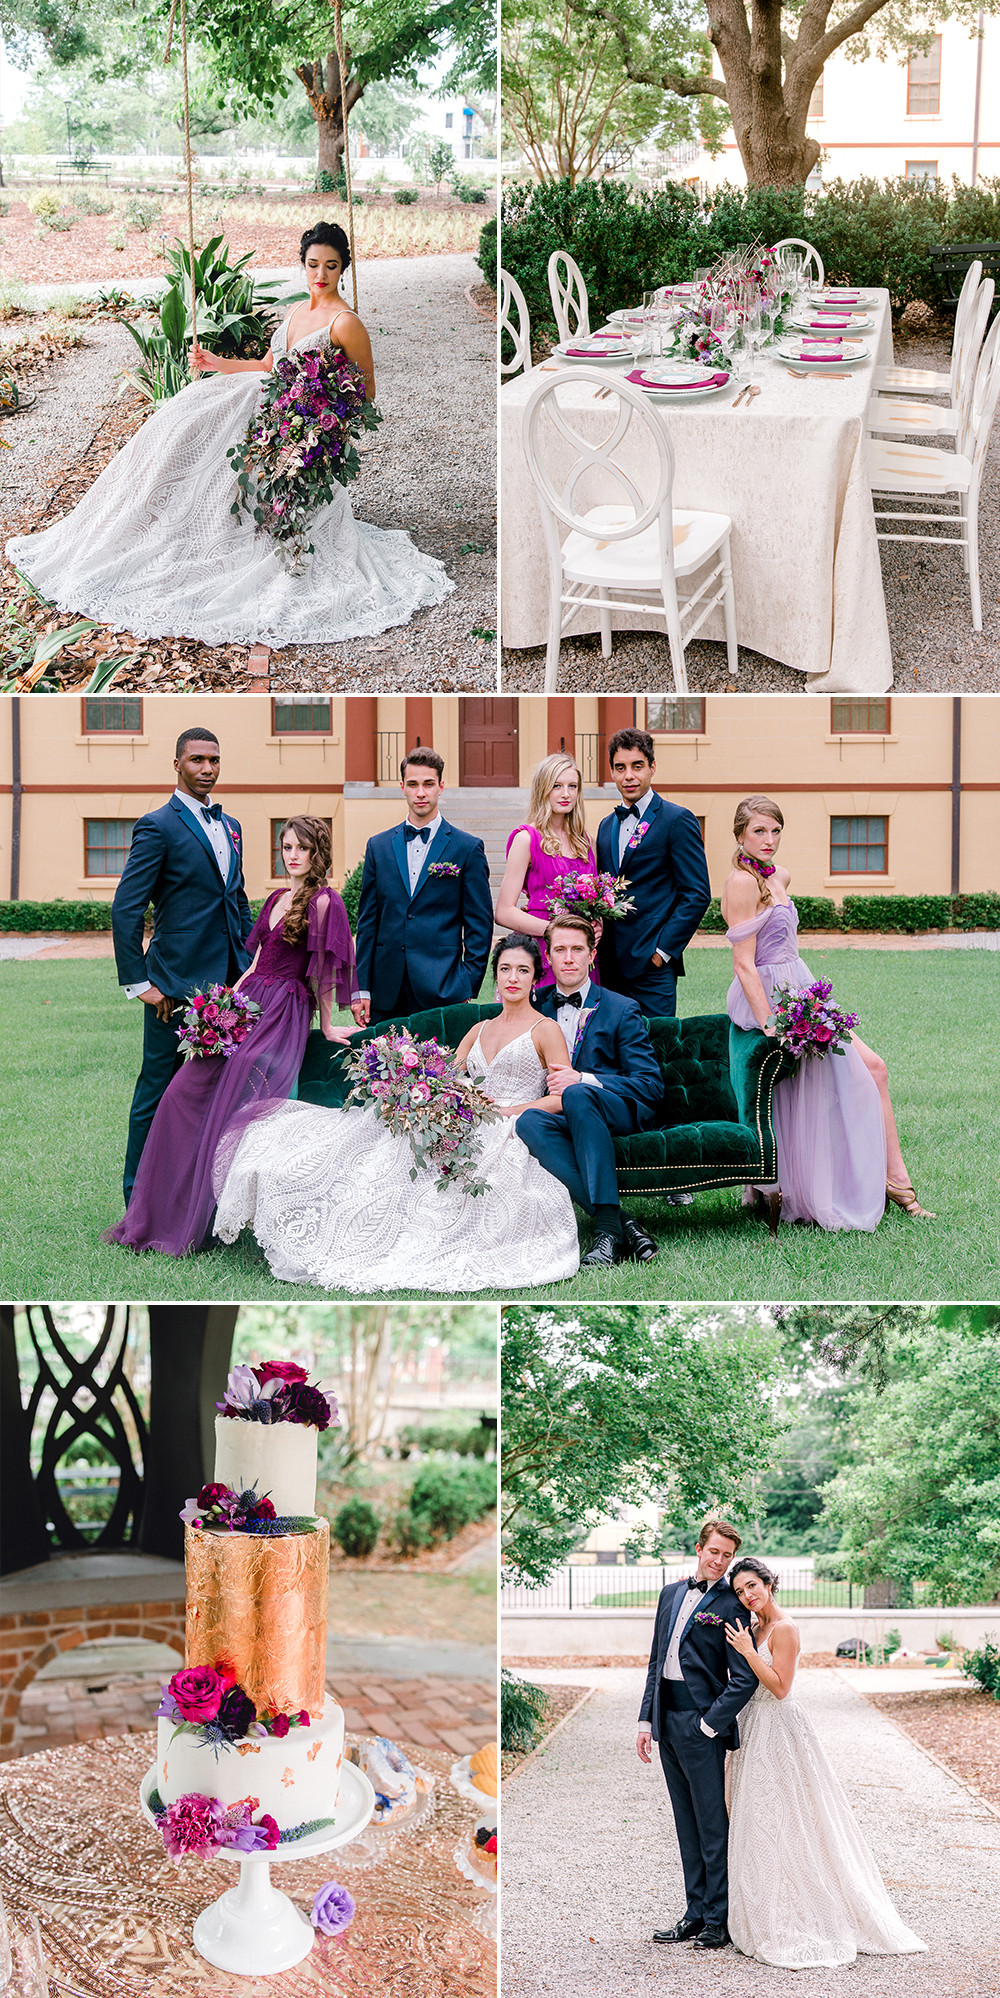 Wedding at The Hampton Preston Mansion | Nina Bashaw is a fine art portrait and wedding photographer serving Columbia, Charleston, Greenville, Charlotte, NC Augusta, Ga, Nashville, TN surrounding areas and worldwide destination weddings and elopements.